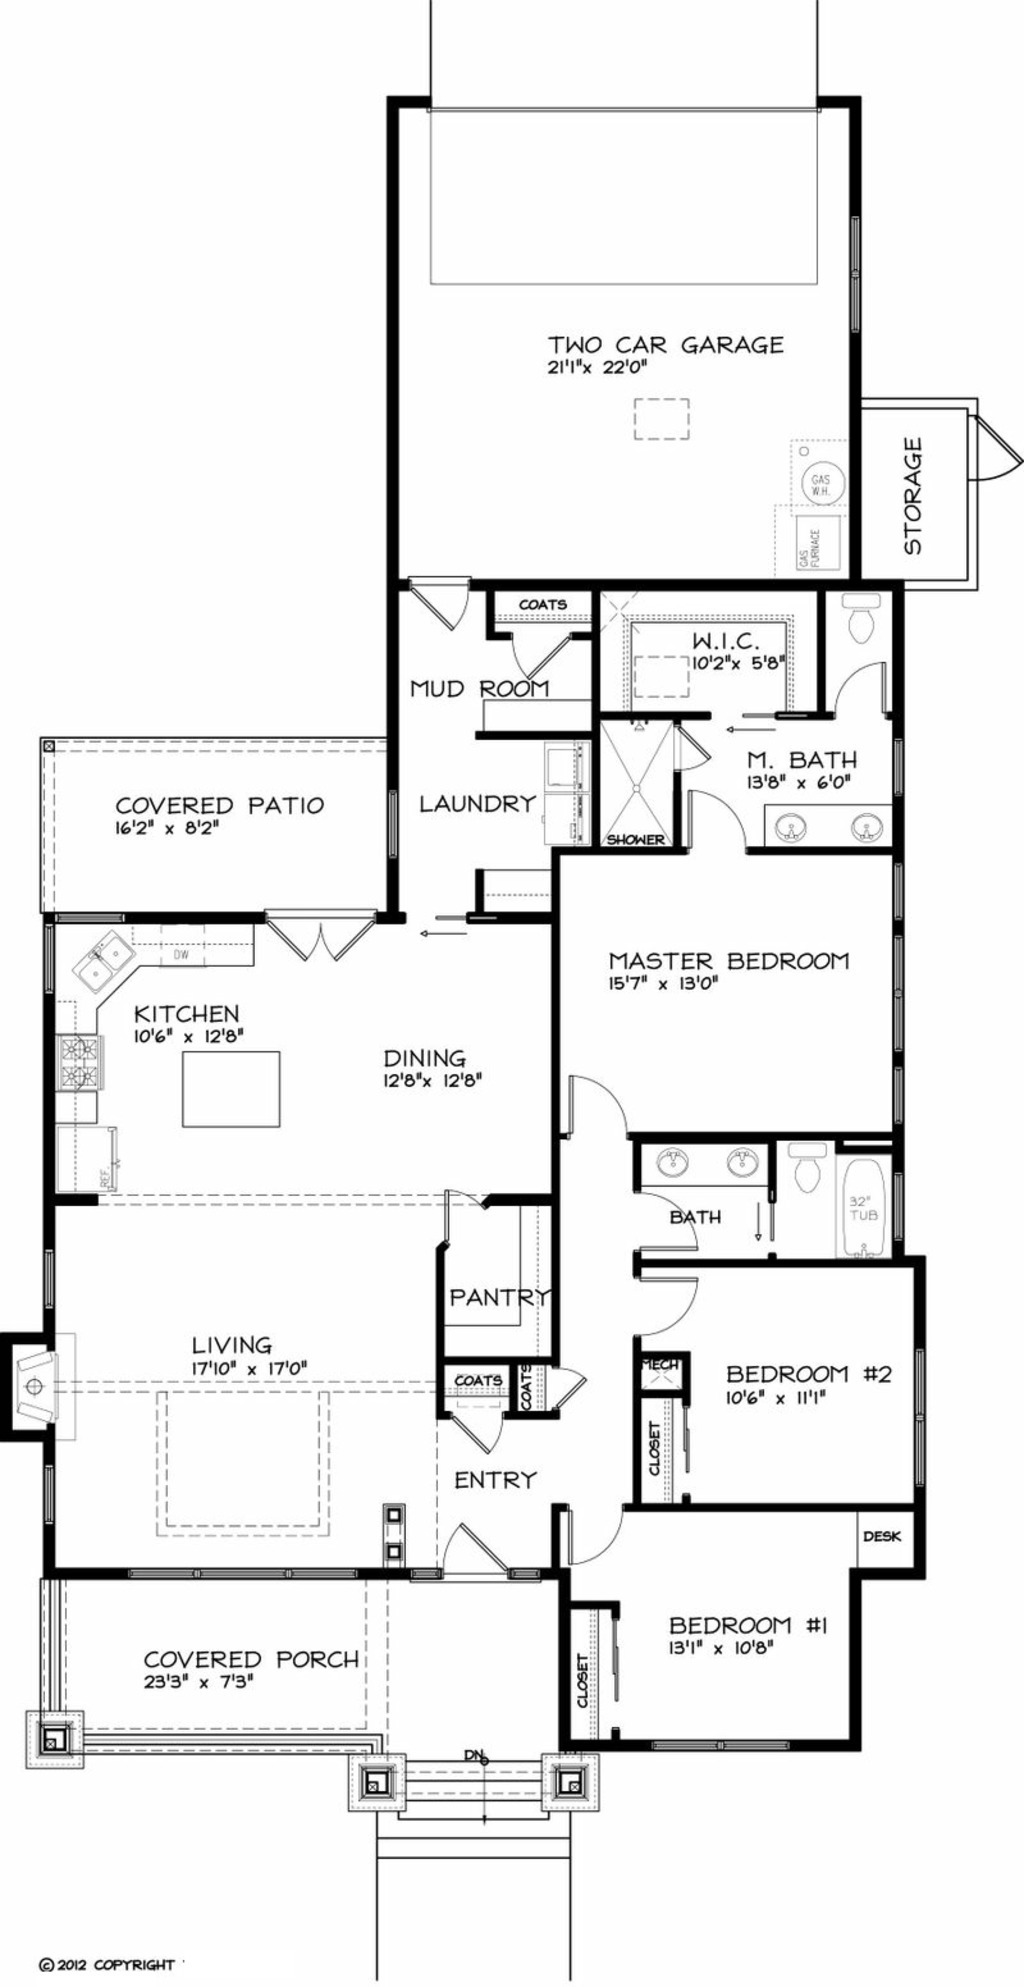 1749 square feet 3 bedrooms 2 bathroom bungalow house plans 2 garage